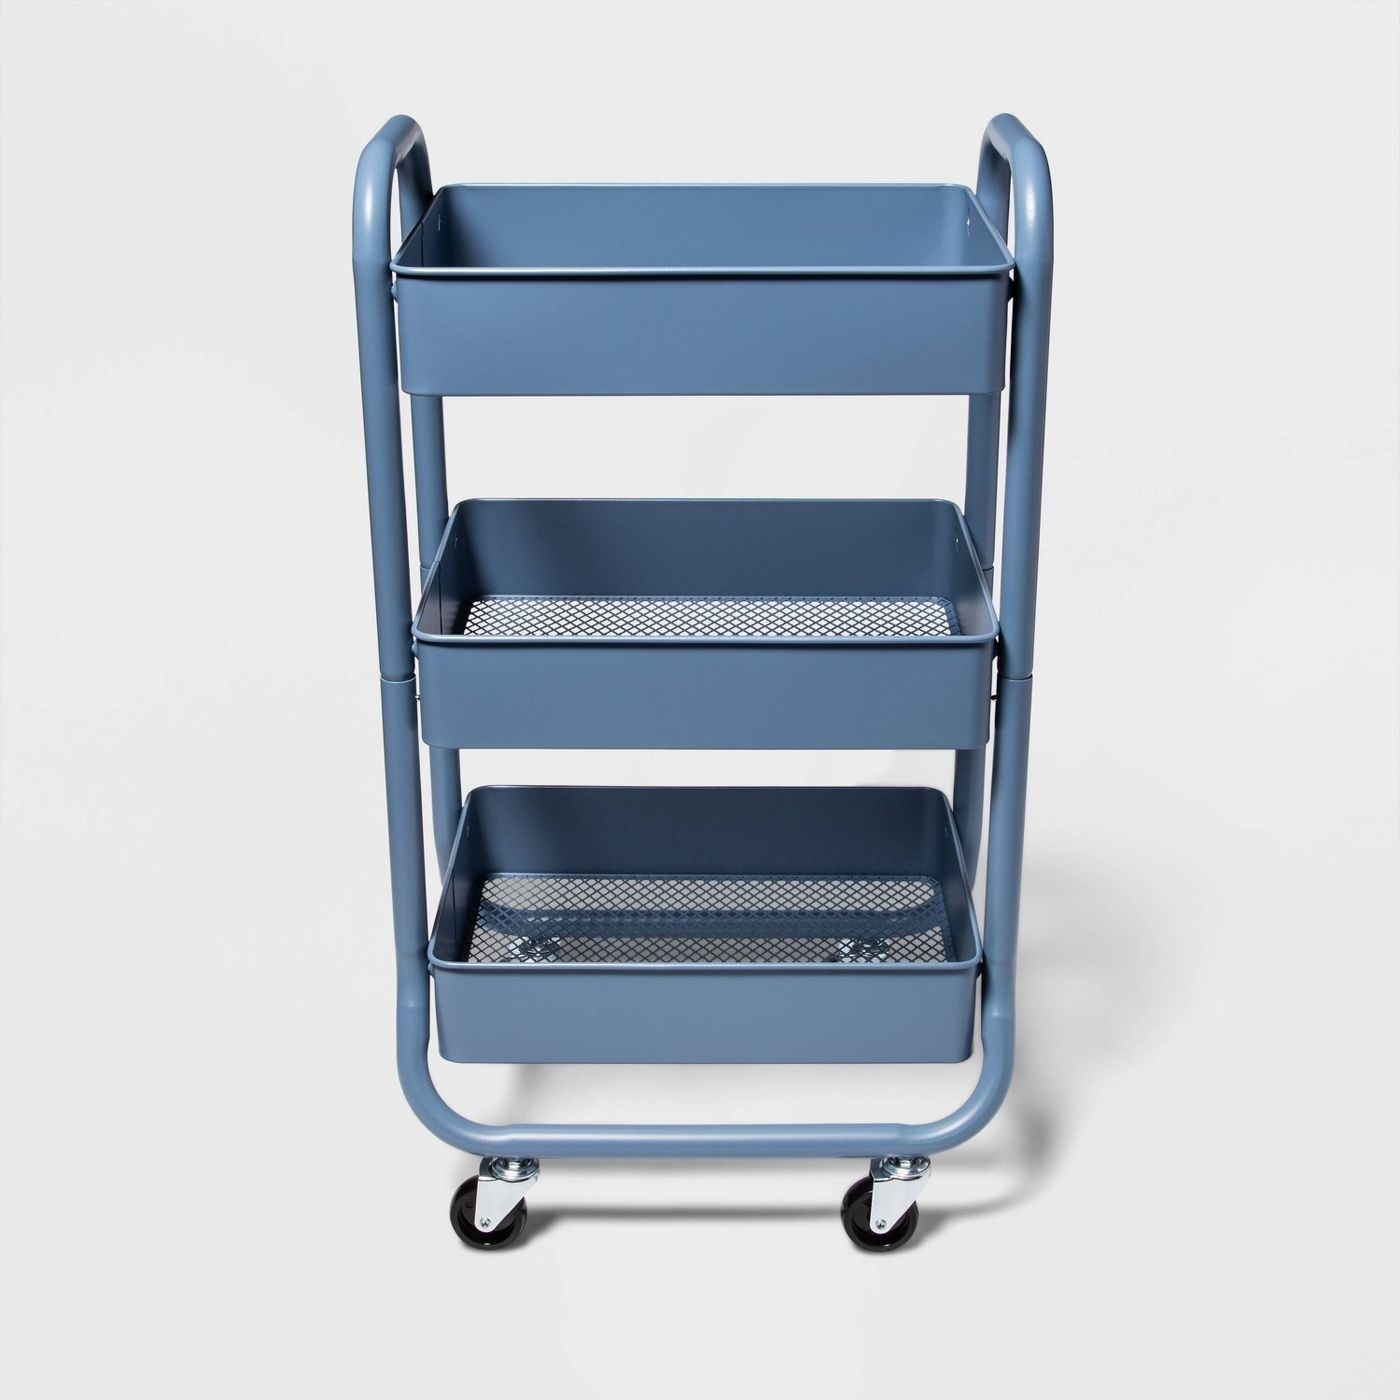 The cart in blue, with three tiers with solid sides and mesh bottoms, and four wheels